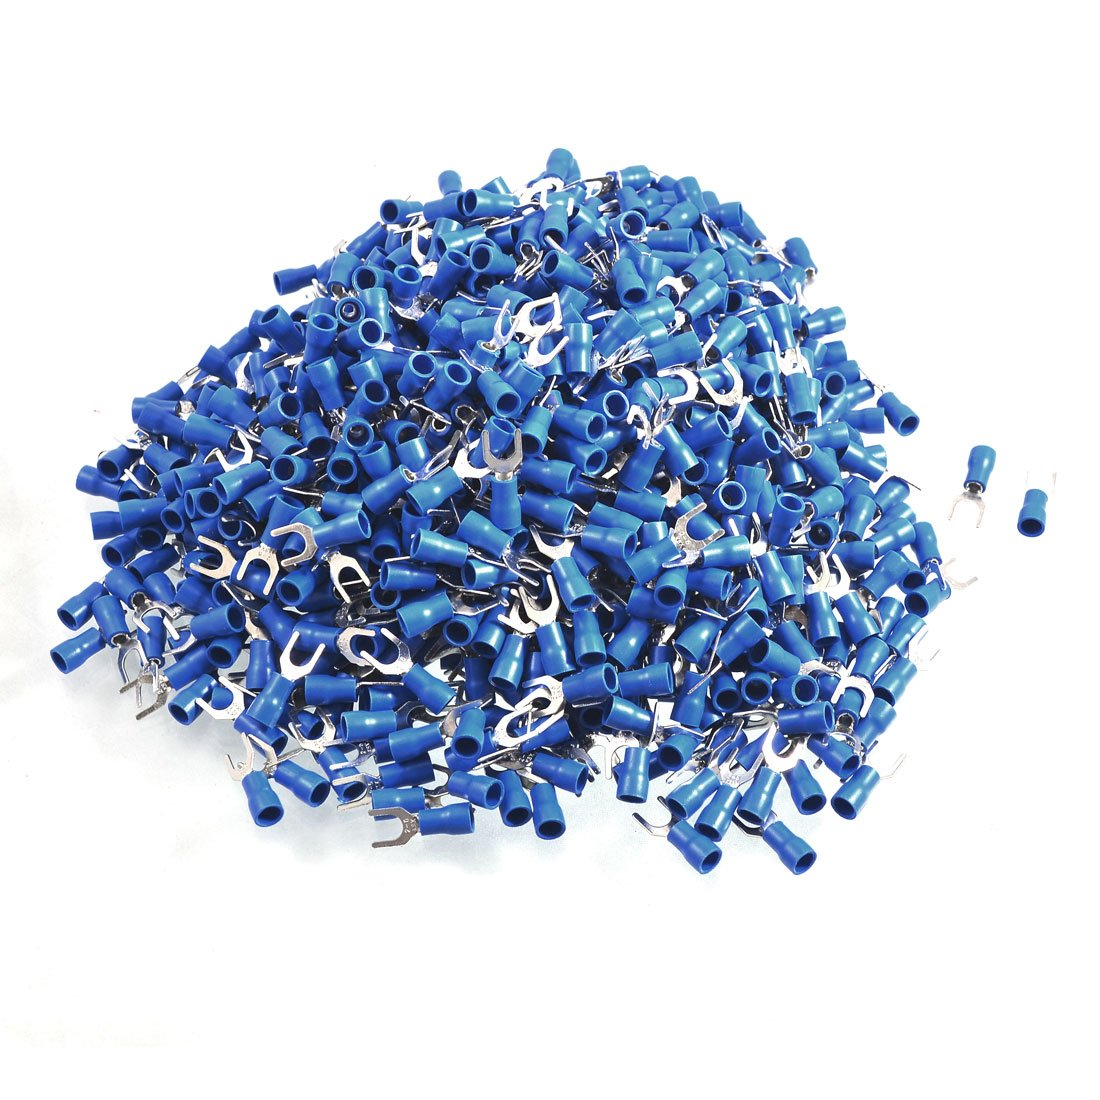 uxcell 1000 Pcs SV2-5 AWG 16-14 Blue Pre Insulated Fork Terminals Connector